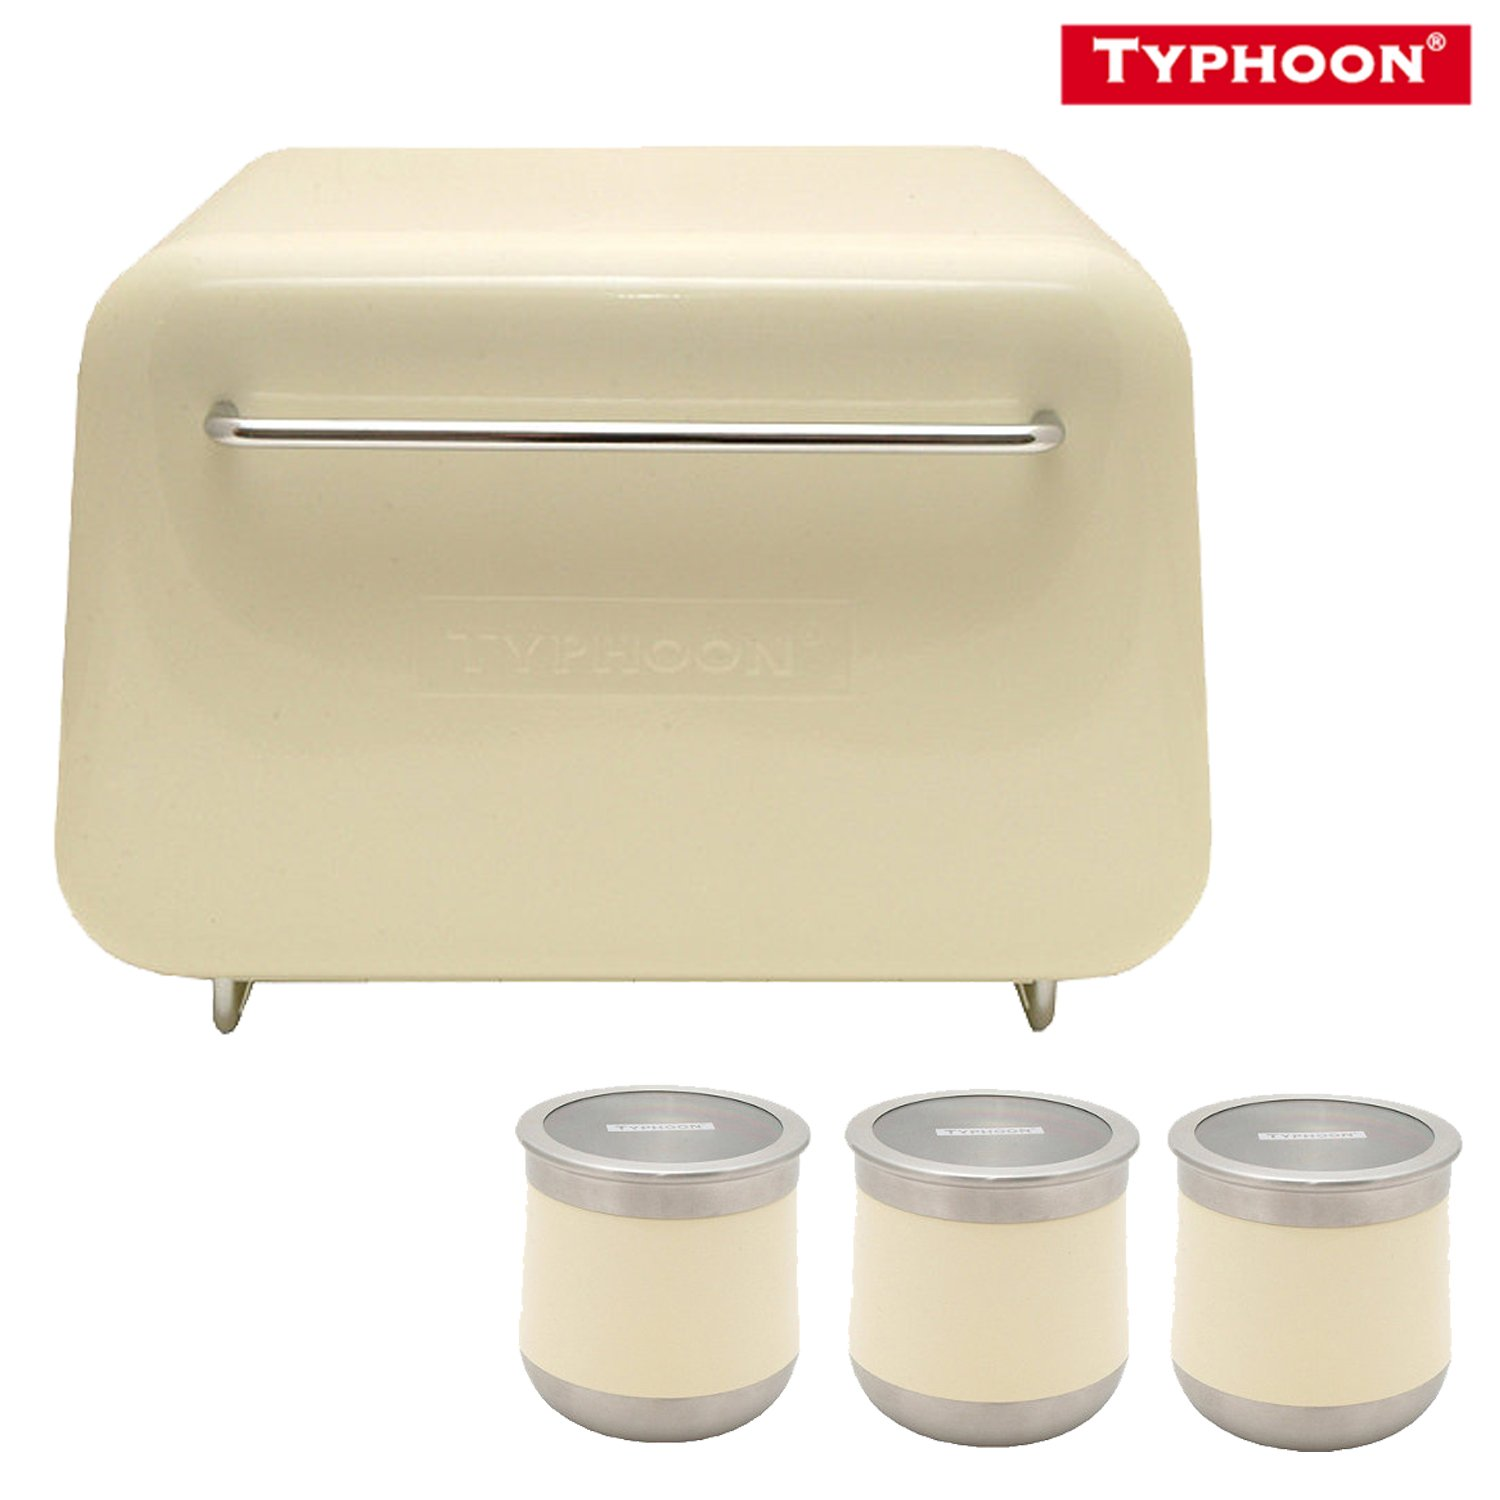 Typhoon novo cream vintage kitchen enamelled bread bin 3 for Cream kitchen set